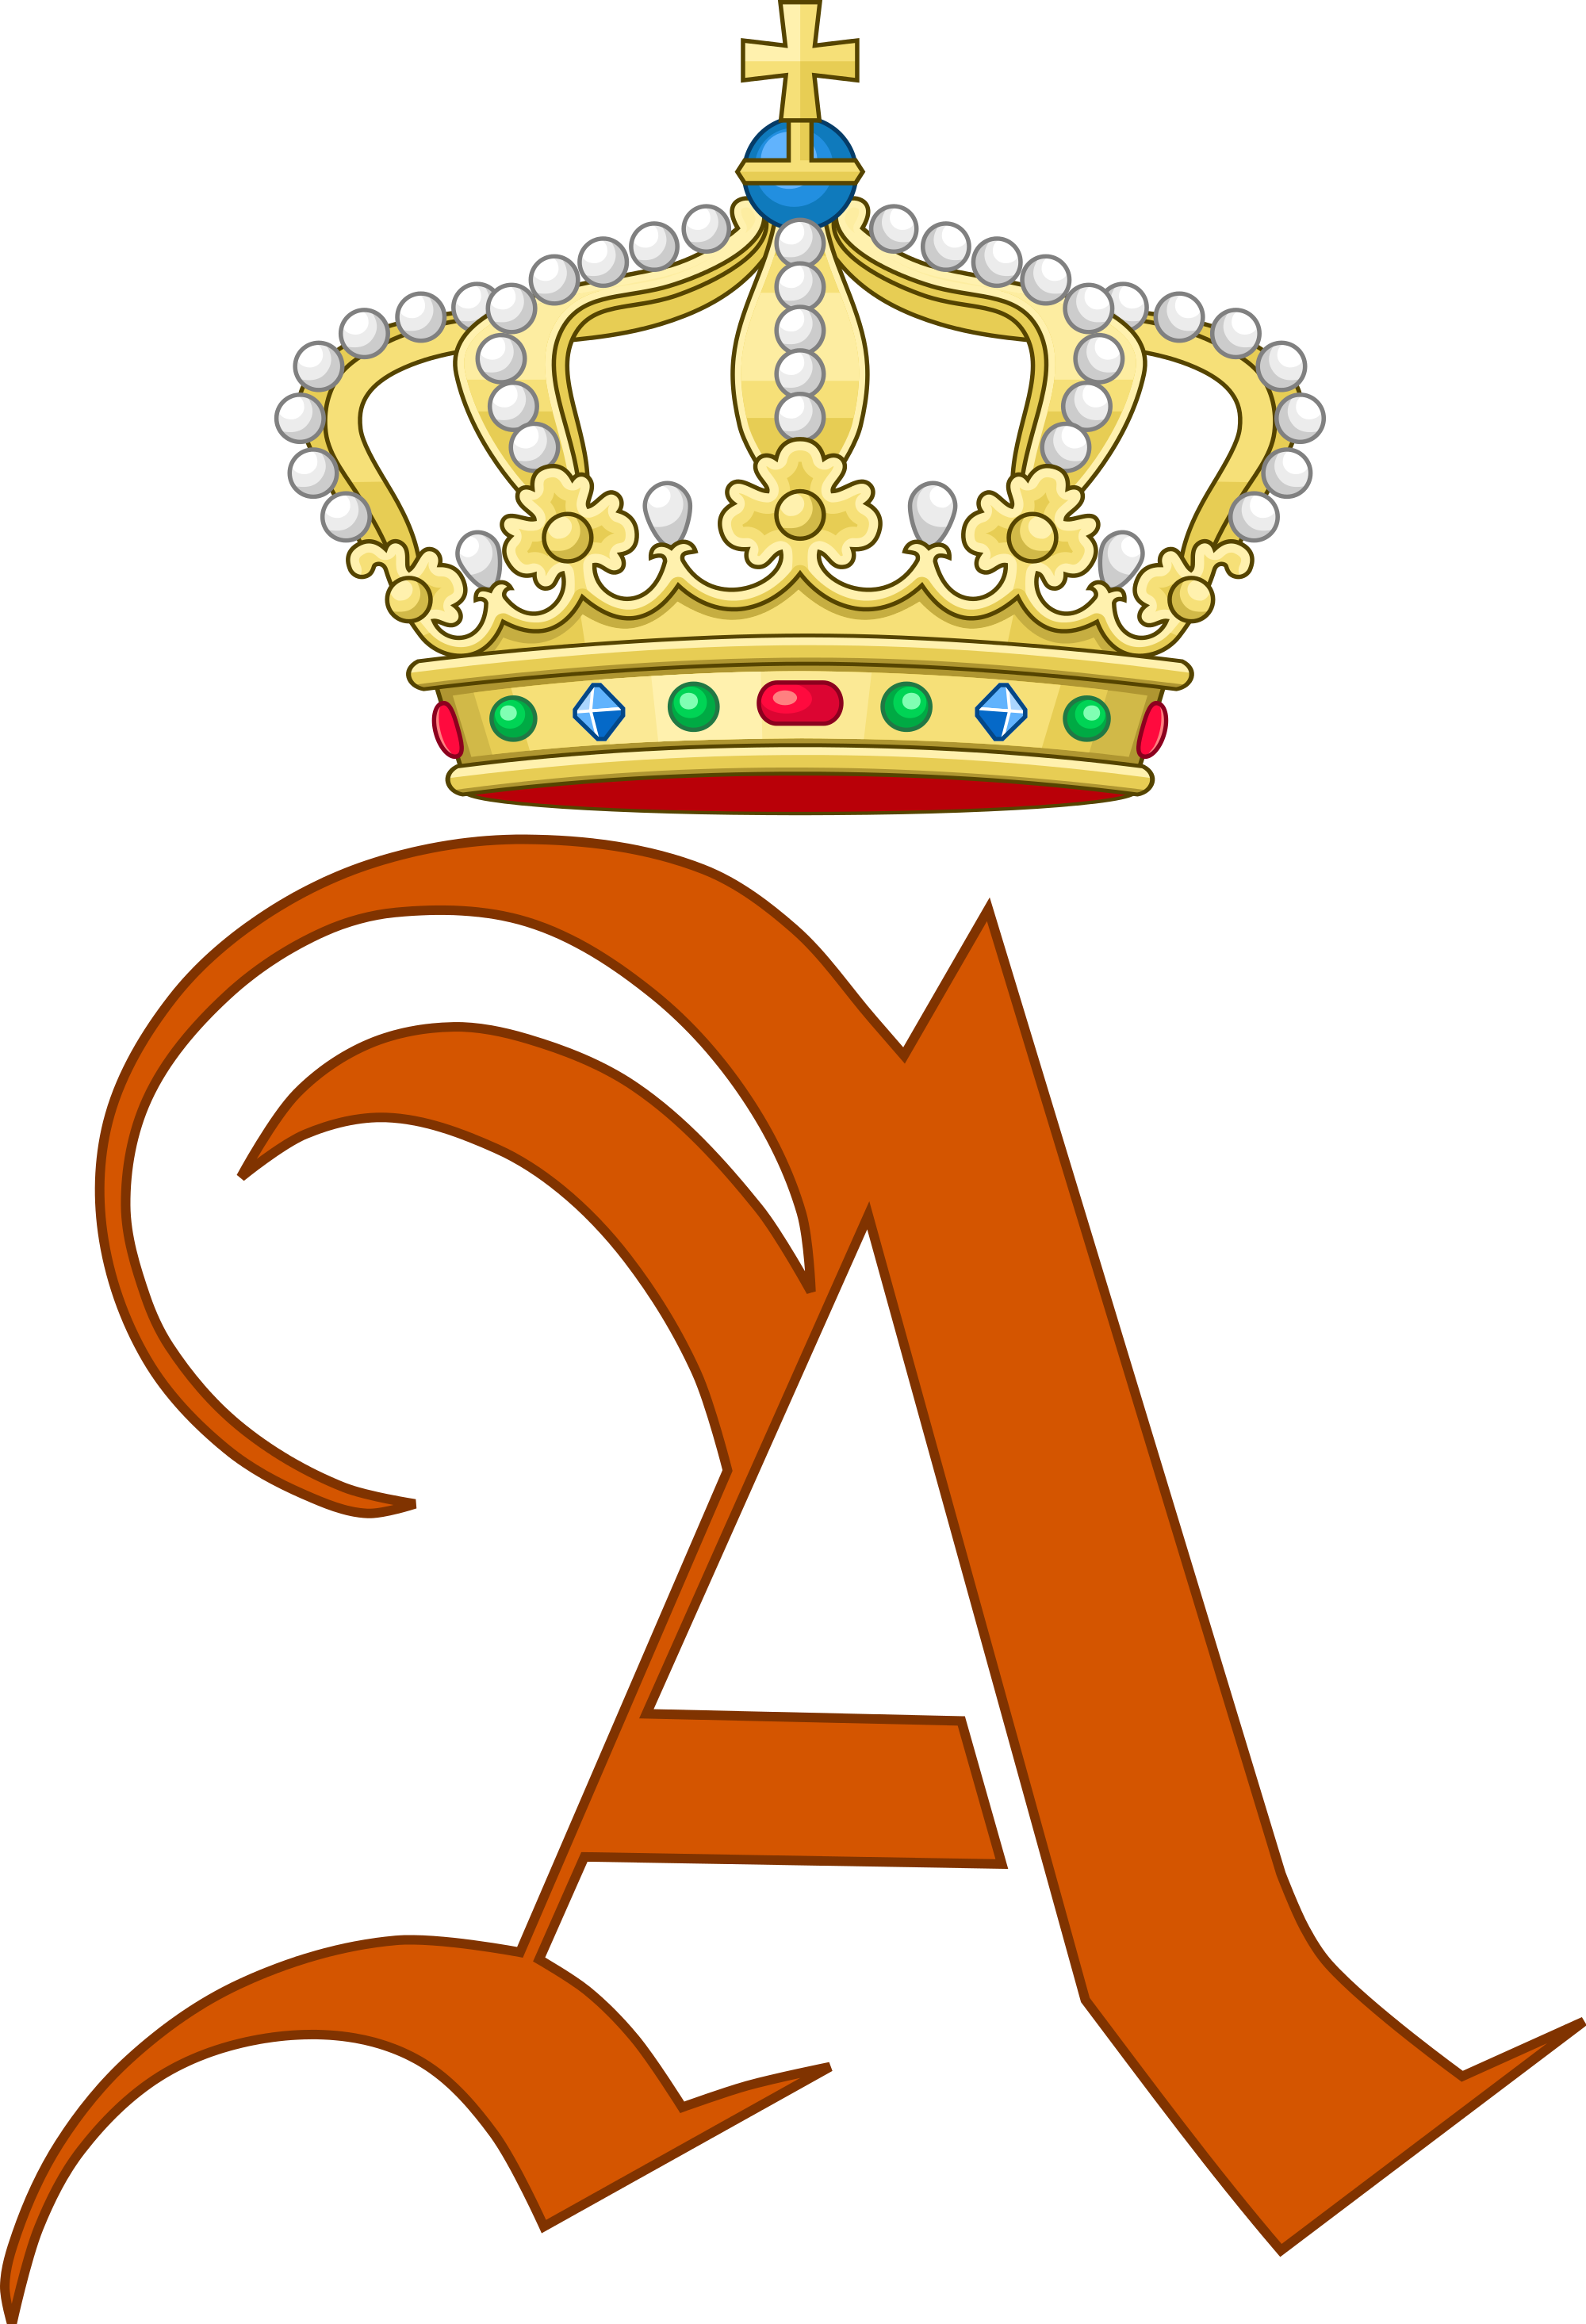 Xv crown clipart royalty free stock Queen Anna Pavlovna of the Netherlands | Royal Monograms | Pinterest ... royalty free stock